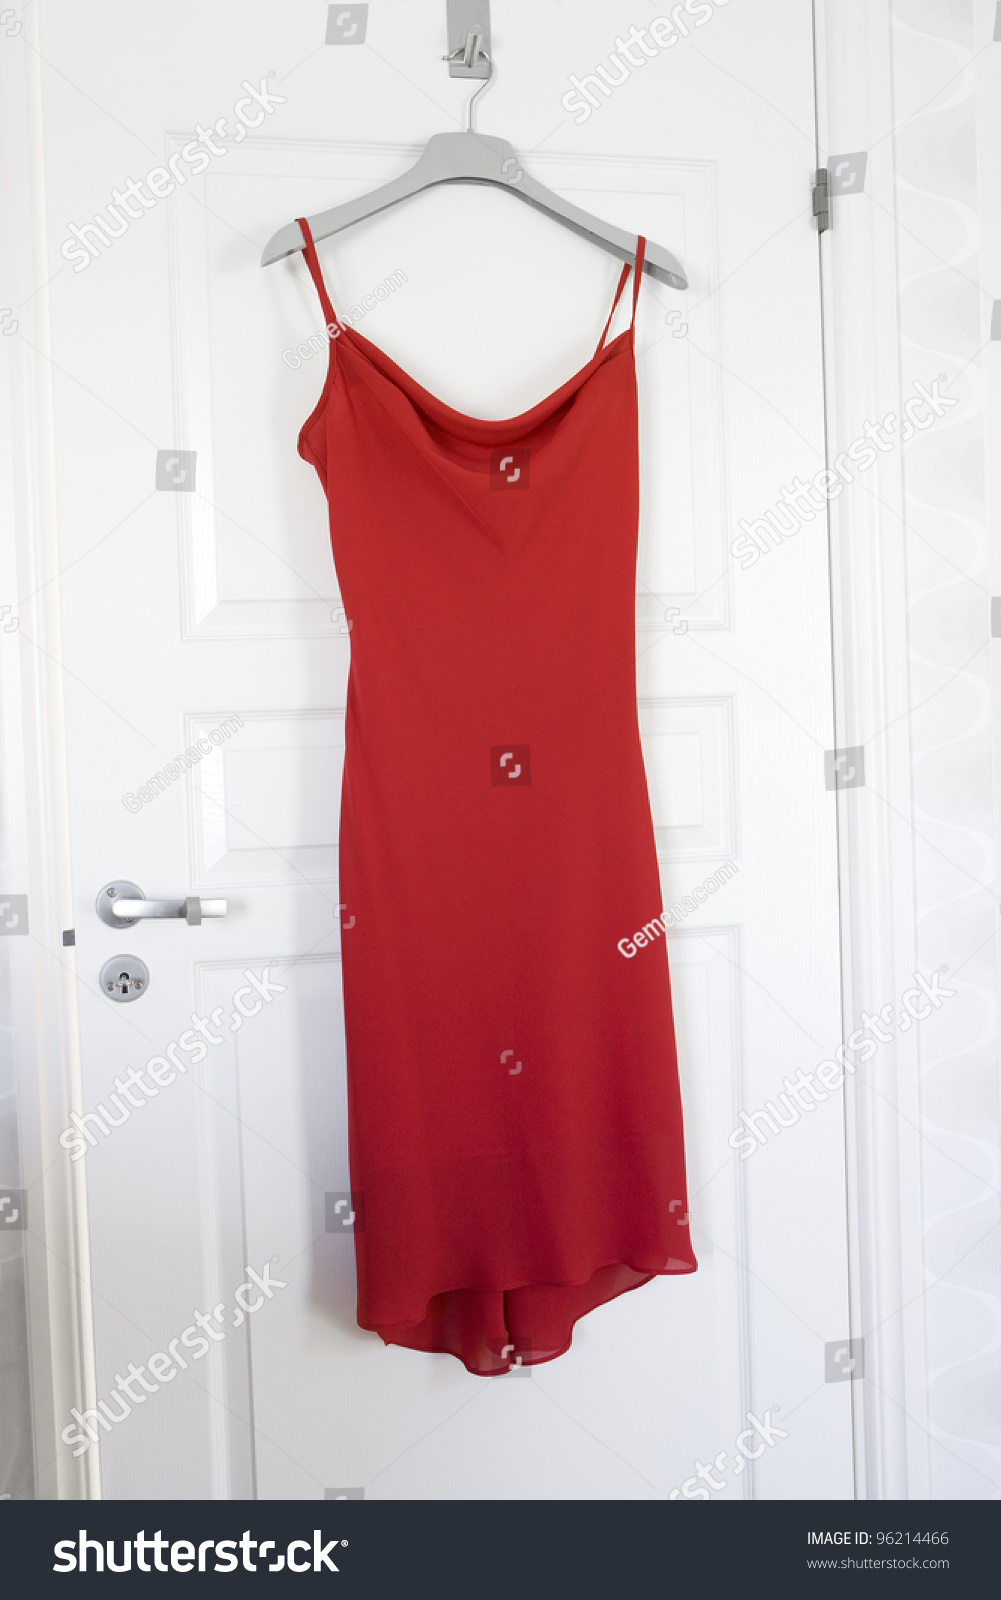 Red Dress Hanging On A Door Stock Photo 96214466